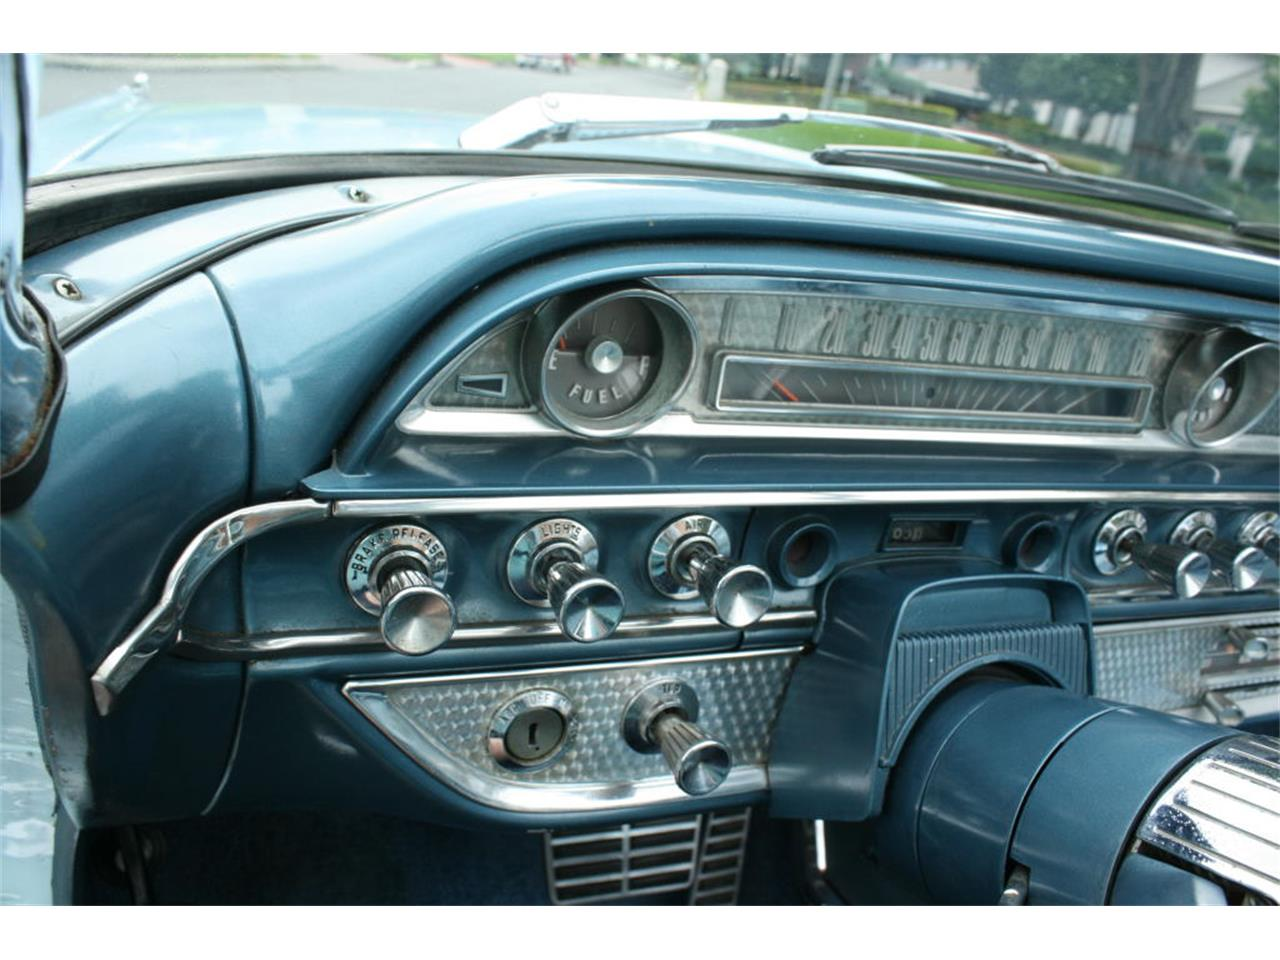 Large Picture of Classic '62 Ford Galaxie located in Lakeland Florida - $26,500.00 - L6EK